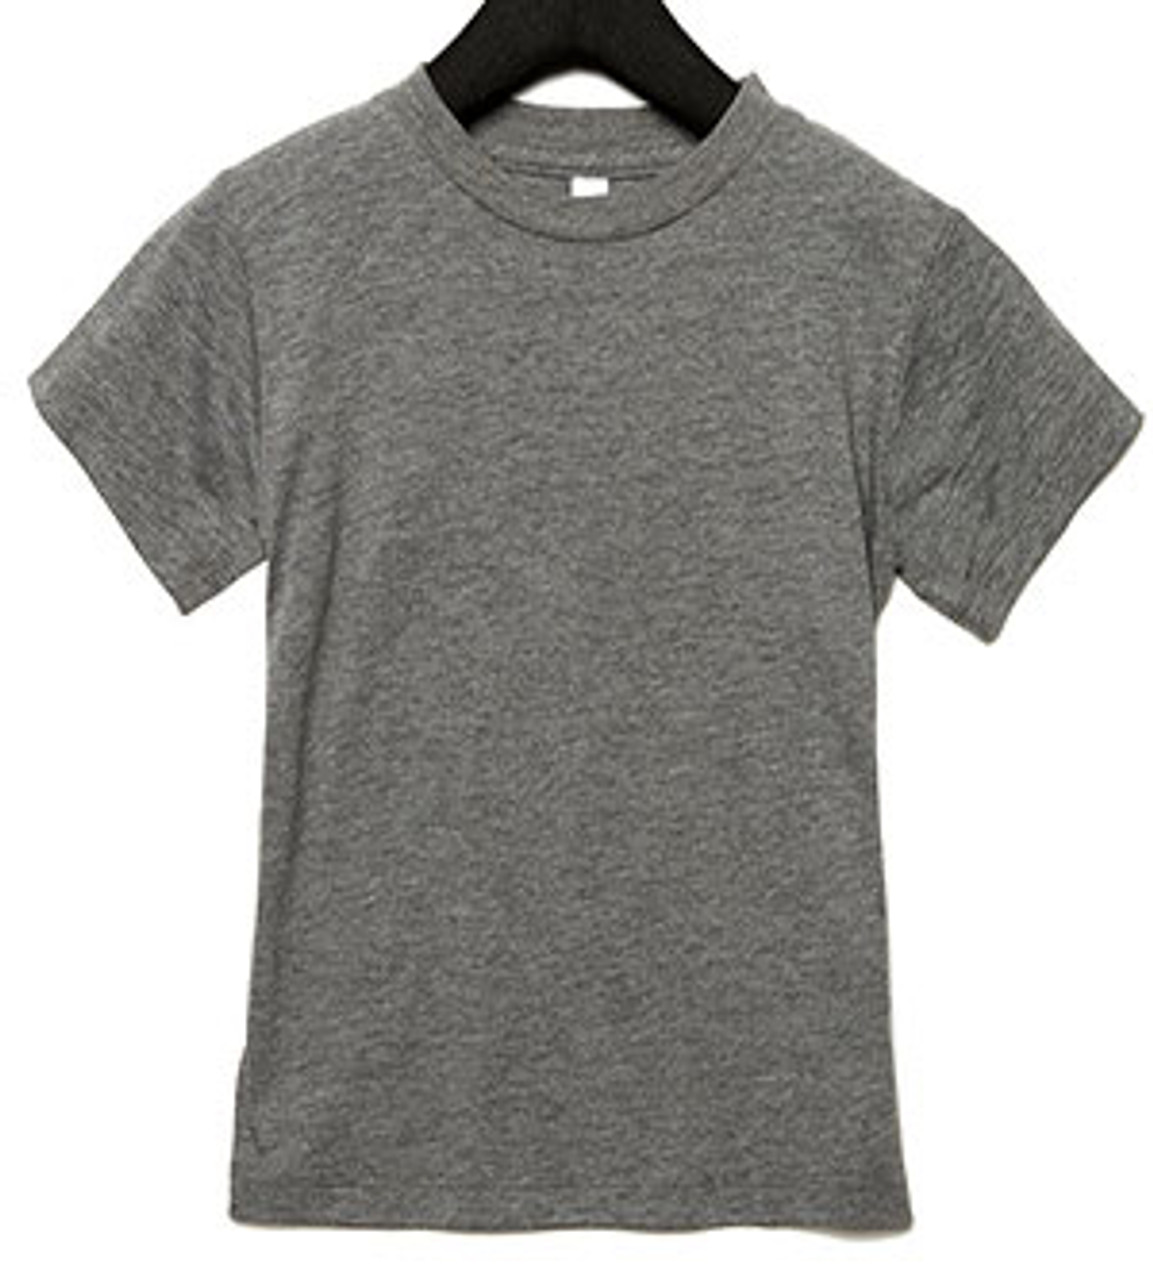 f0e184dc7dd 3413T Bella + Canvas Toddler TriBlend Short Sleeve T-Shirt  3413T - Blue  TriBlend  3413T - Charcoal Black TriBlend  3413T - Grey TriBlend ...